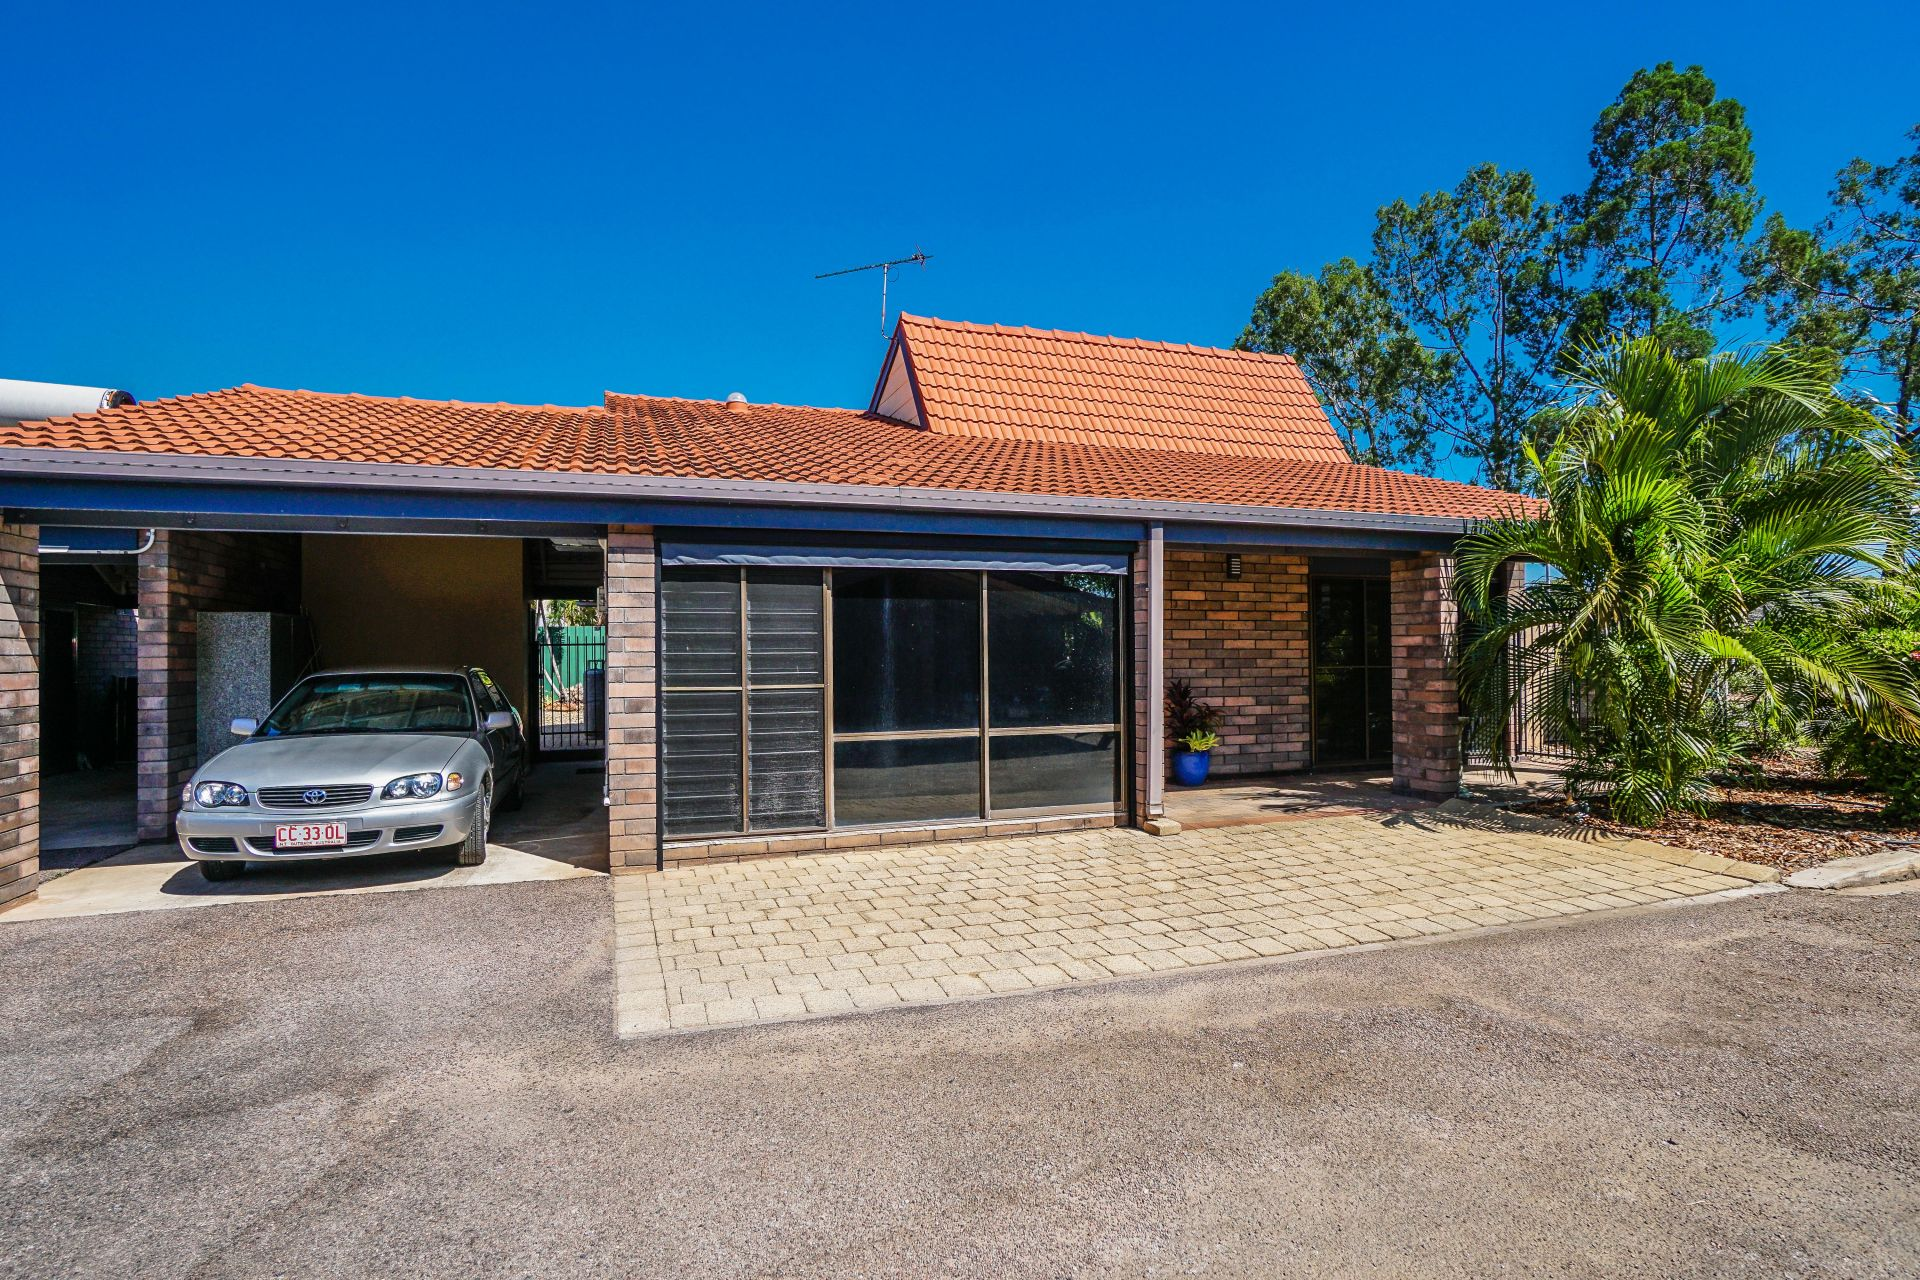 LEANYER, NT 0812